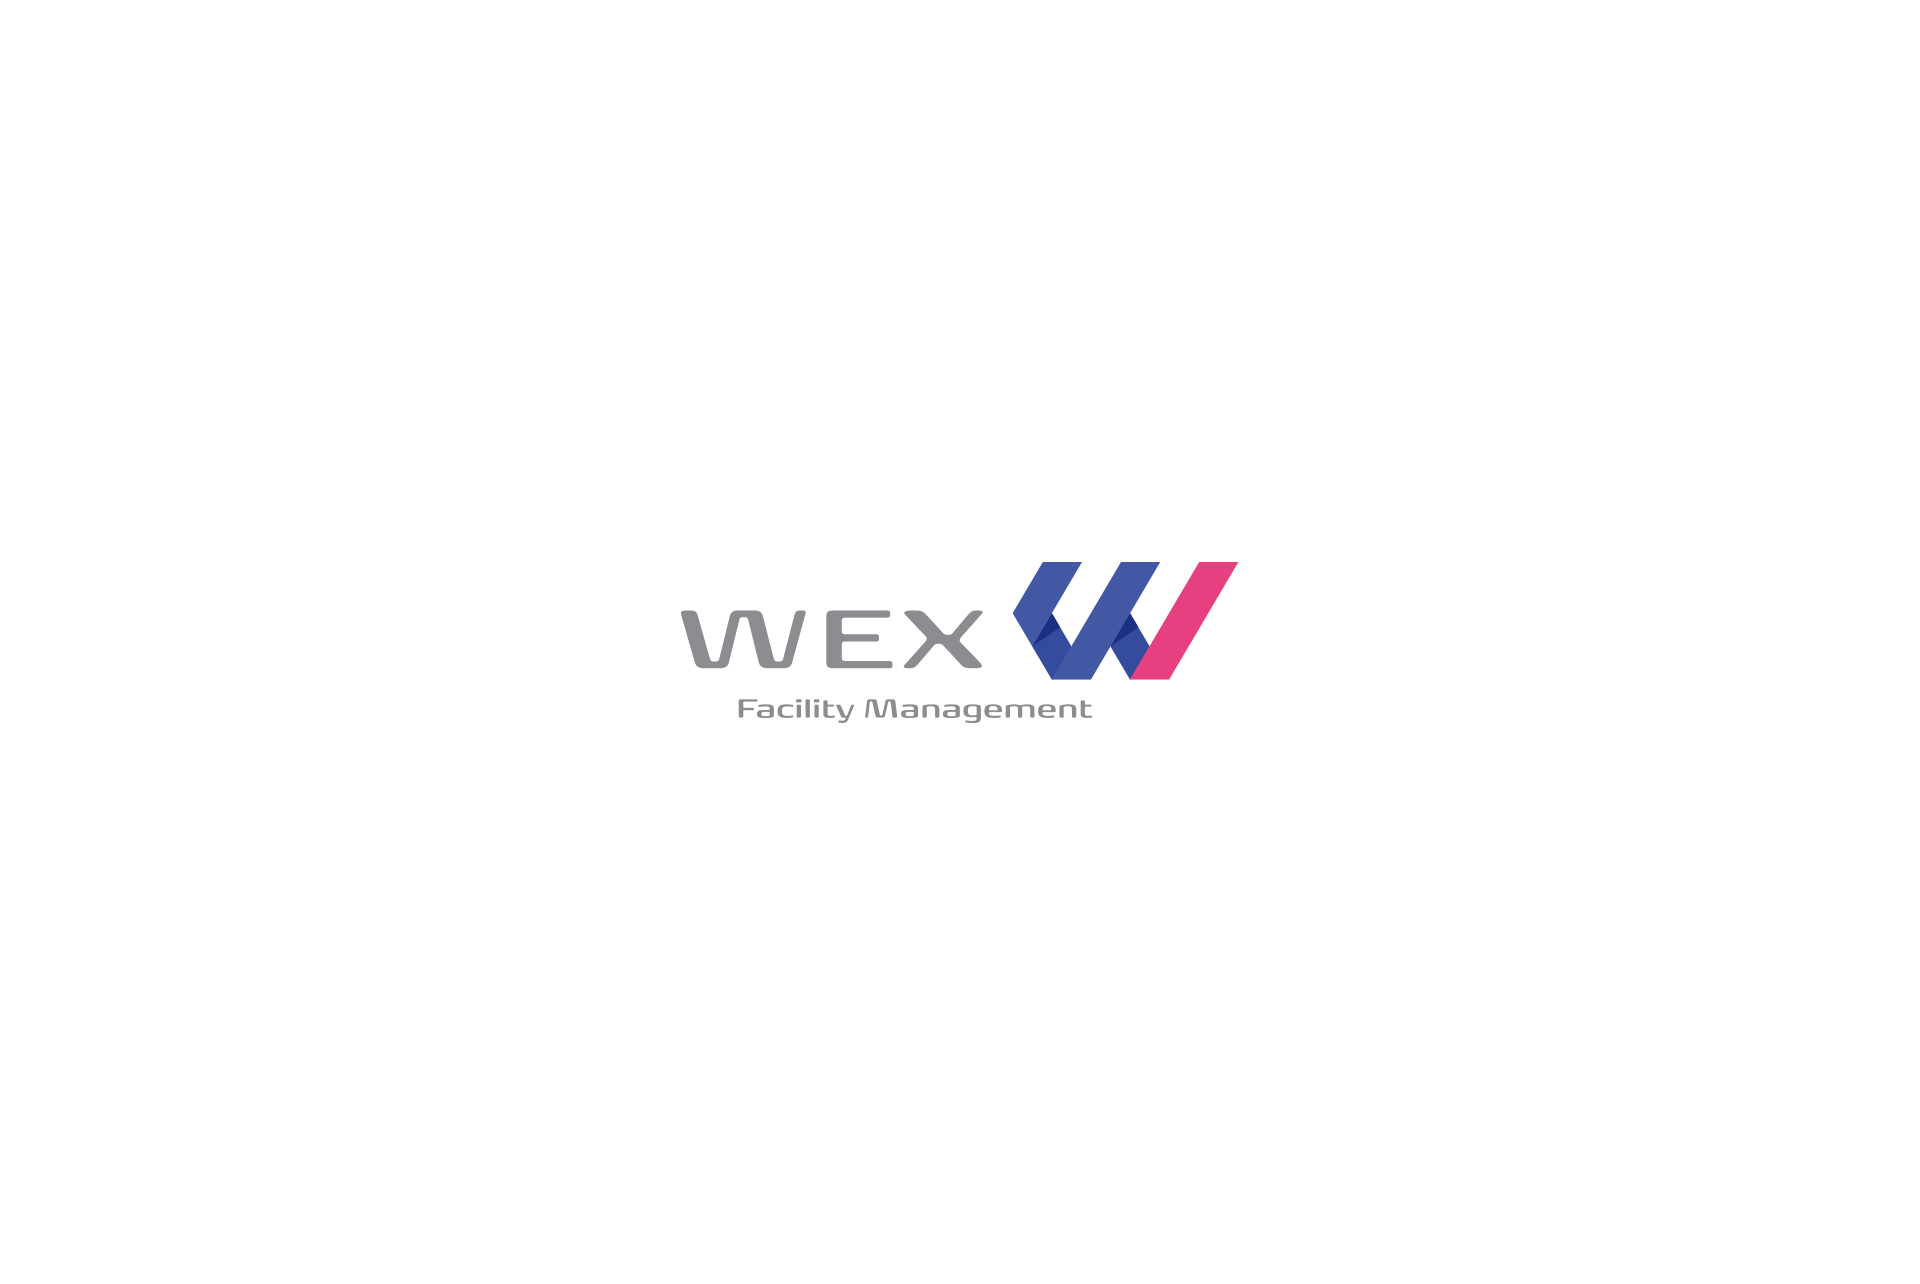 WEX Facility Management Branding Logo